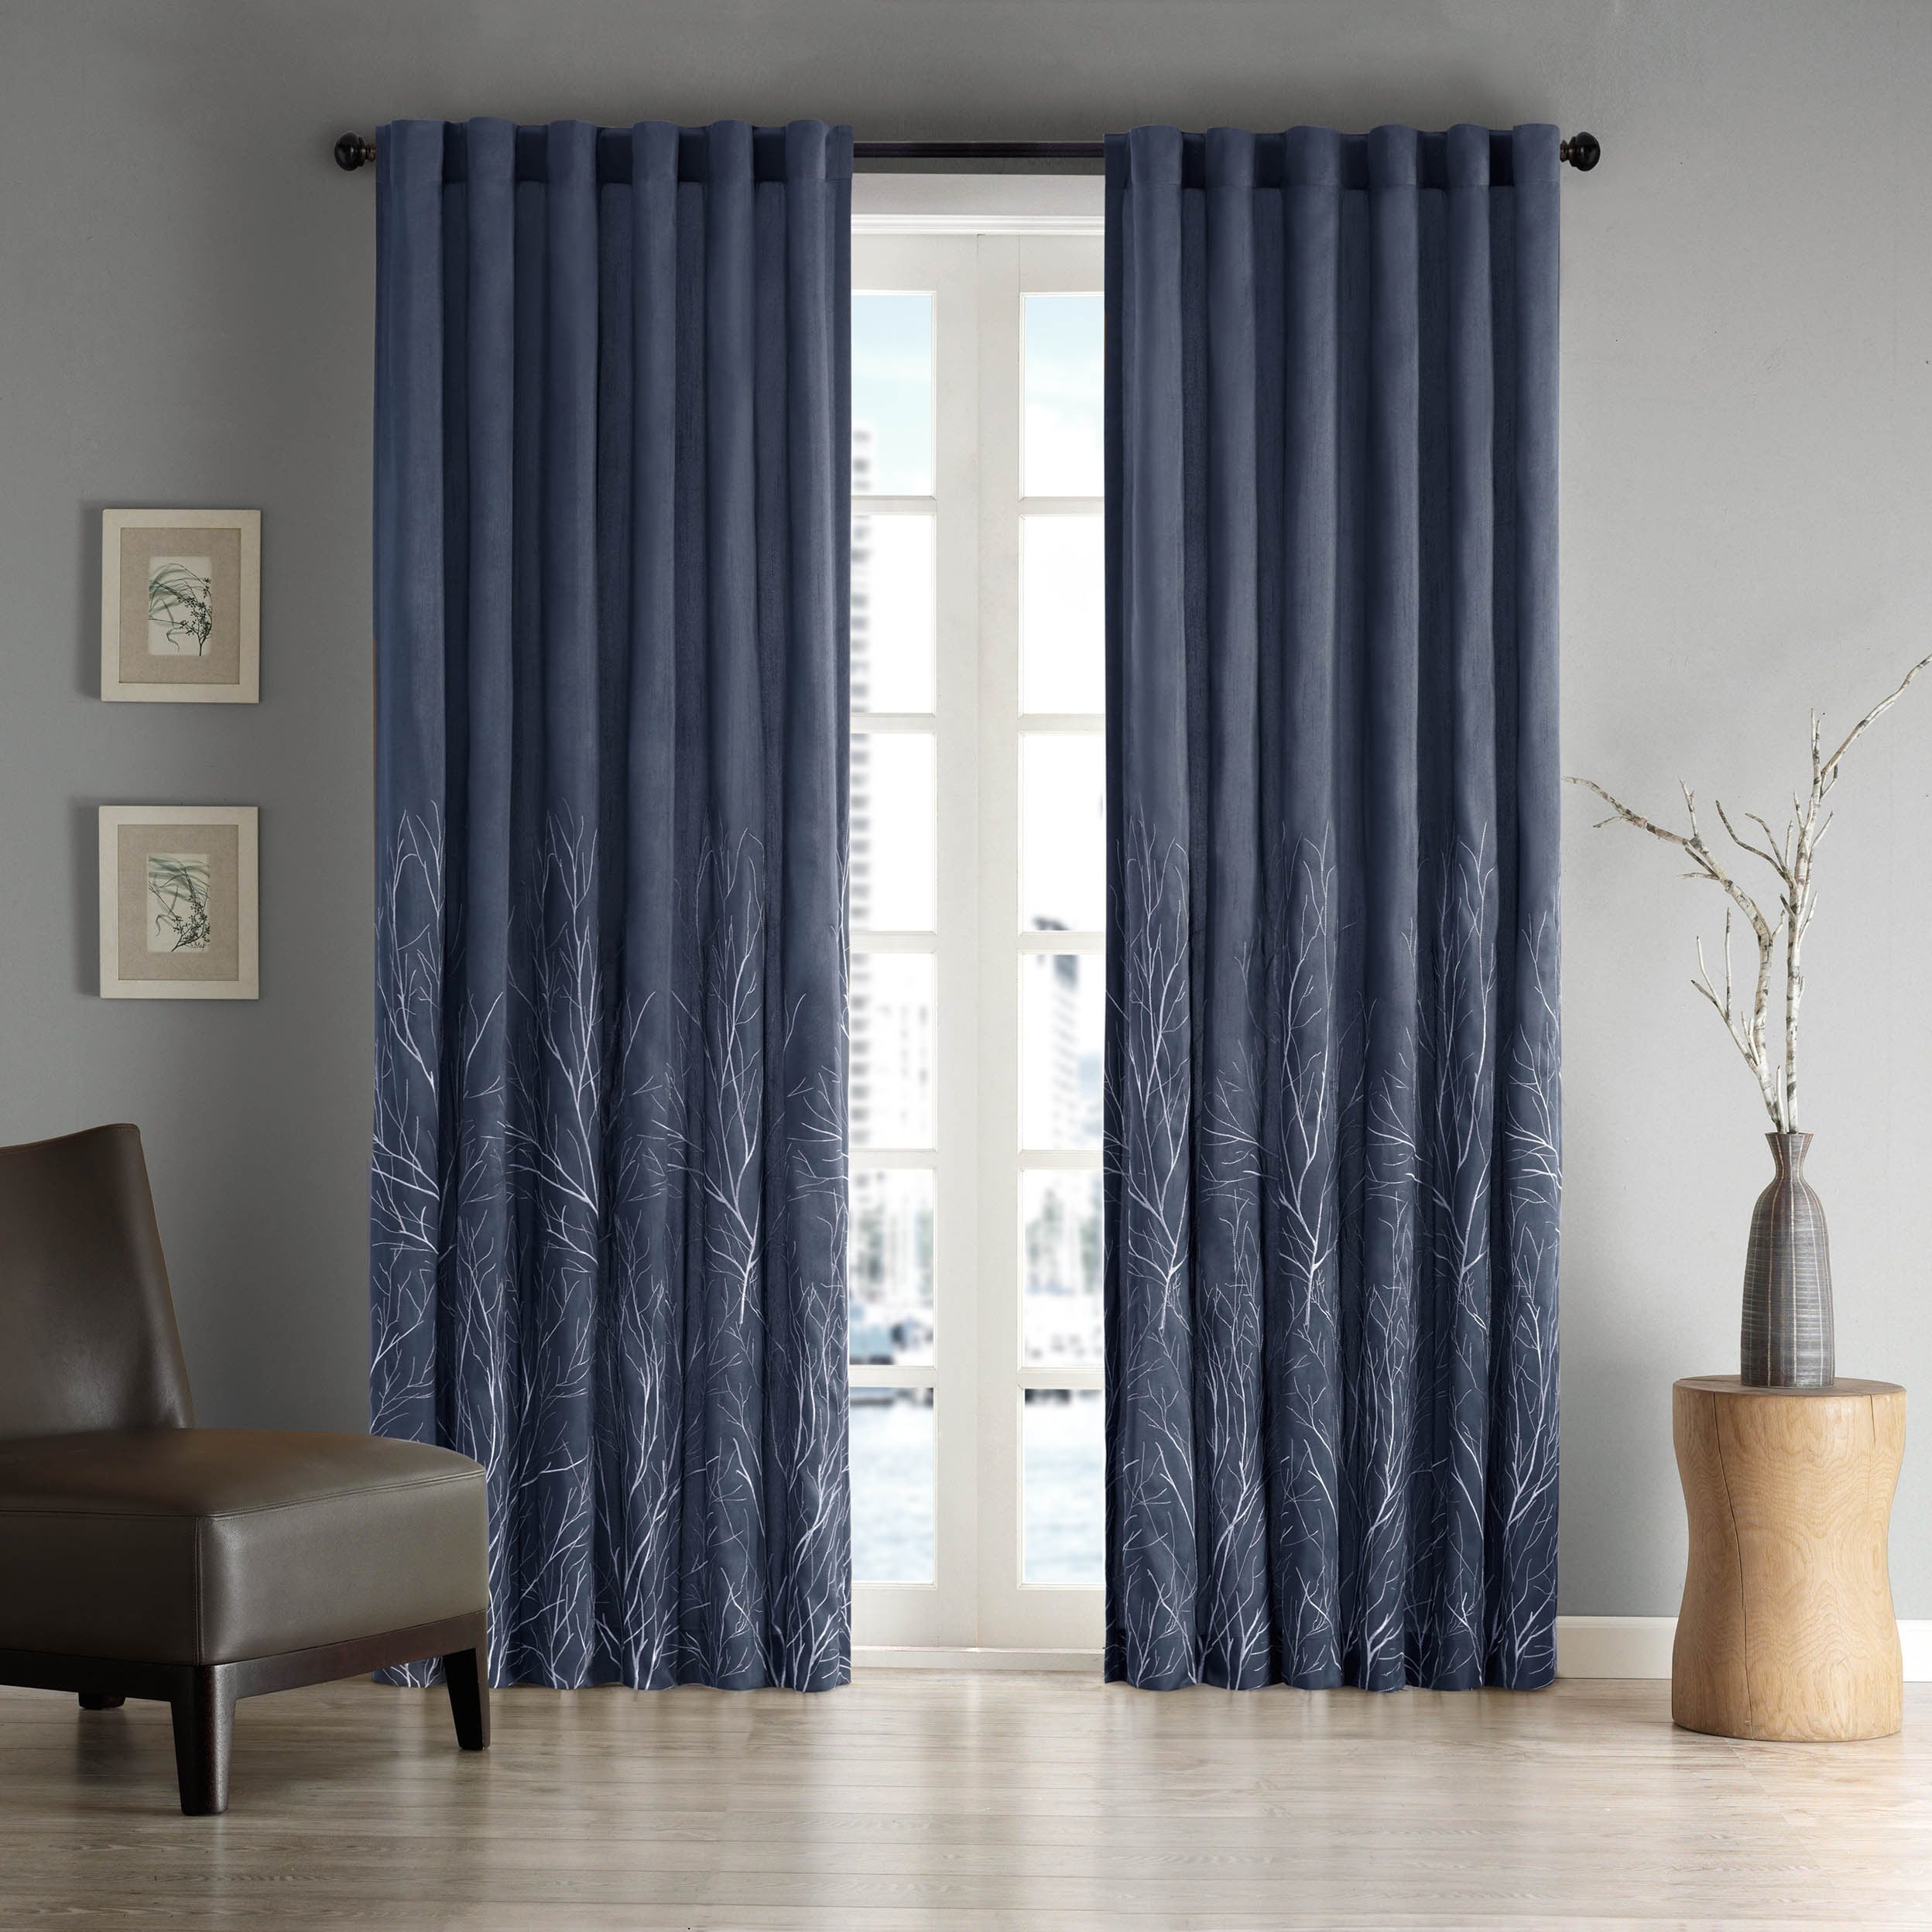 drapes quality curtains curtain blackout hotel uk manufacturer overstock and drapery liner bedspreads